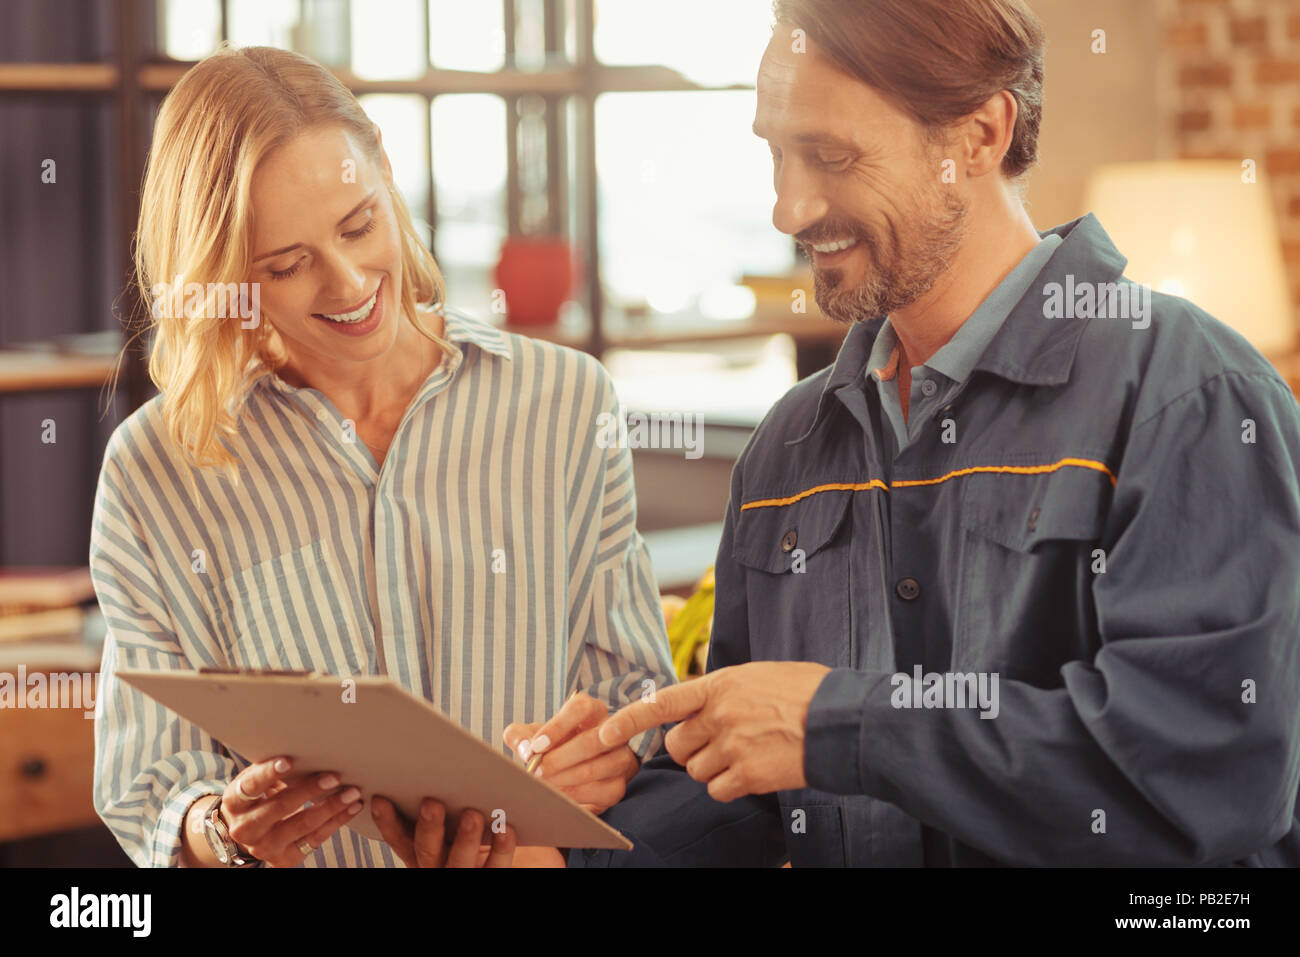 Attentive female person putting her sign - Stock Image